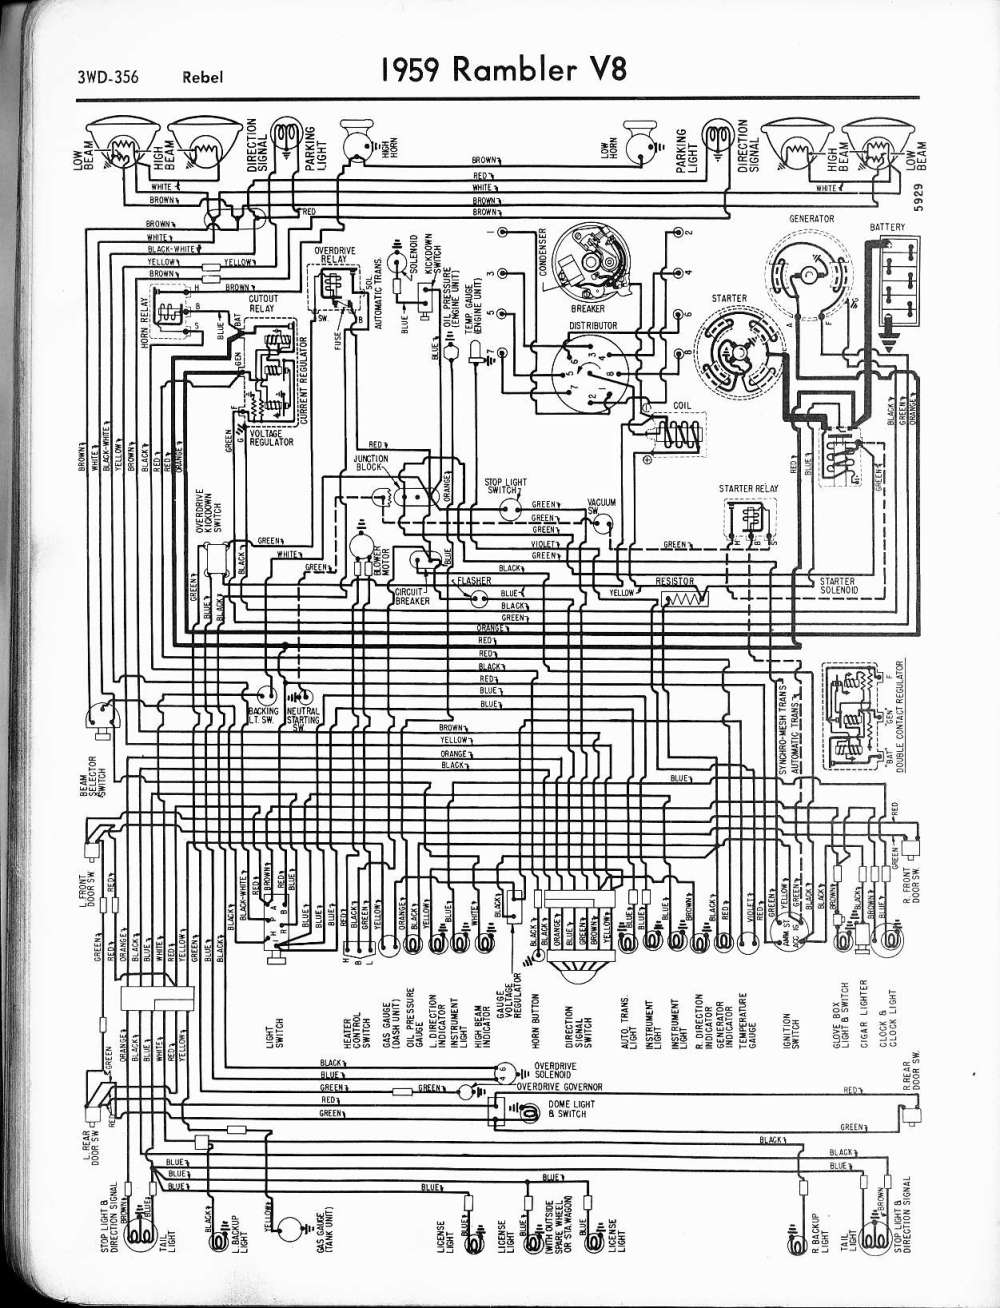 medium resolution of rambler wiring diagrams the old car manual project 1968 amc rambler rebel sst 1959 rambler v8